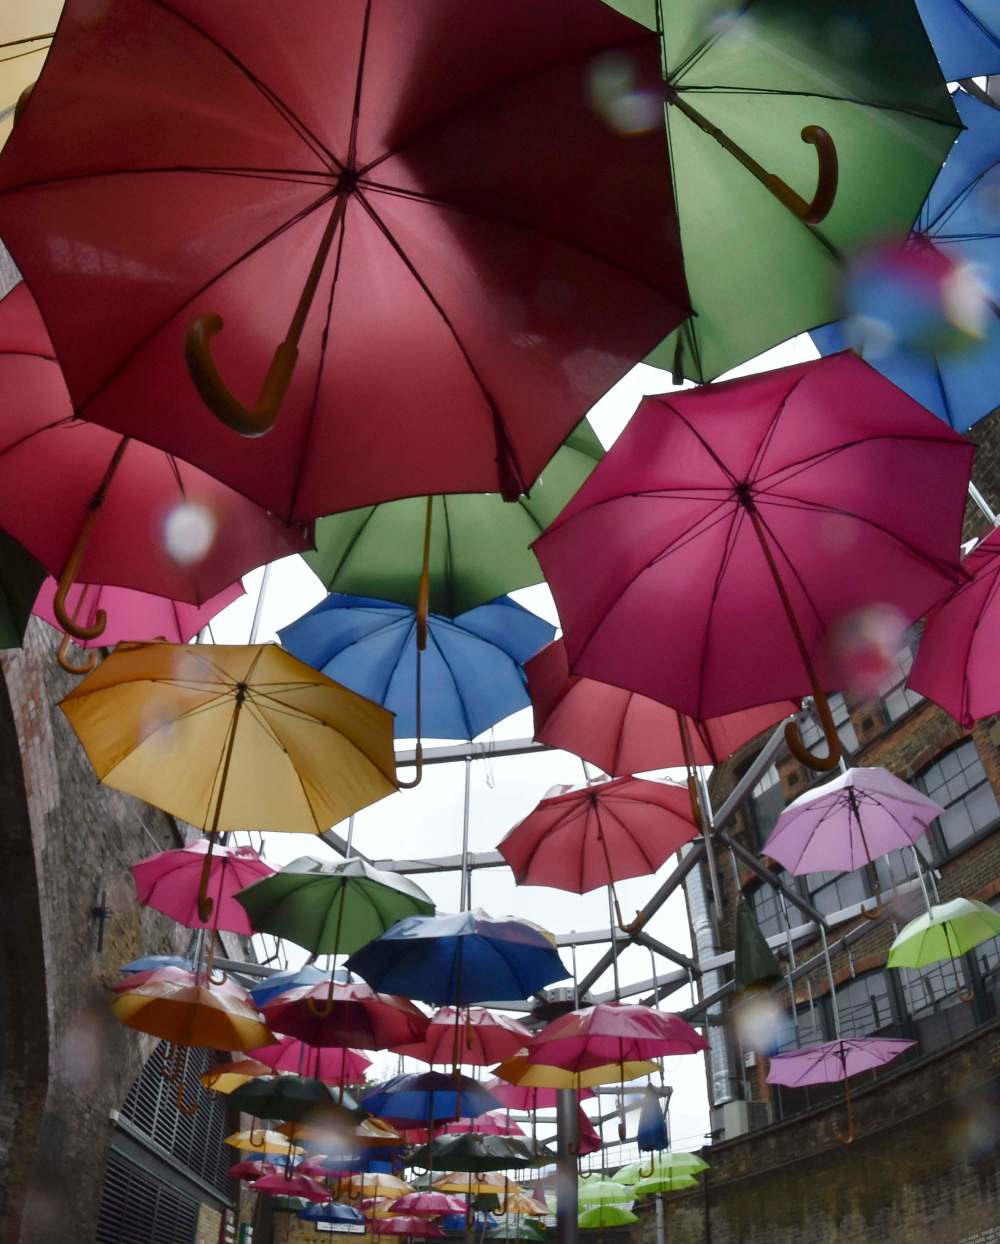 A sculpture constructed of umbrellas is seen in the rain in a street in central London